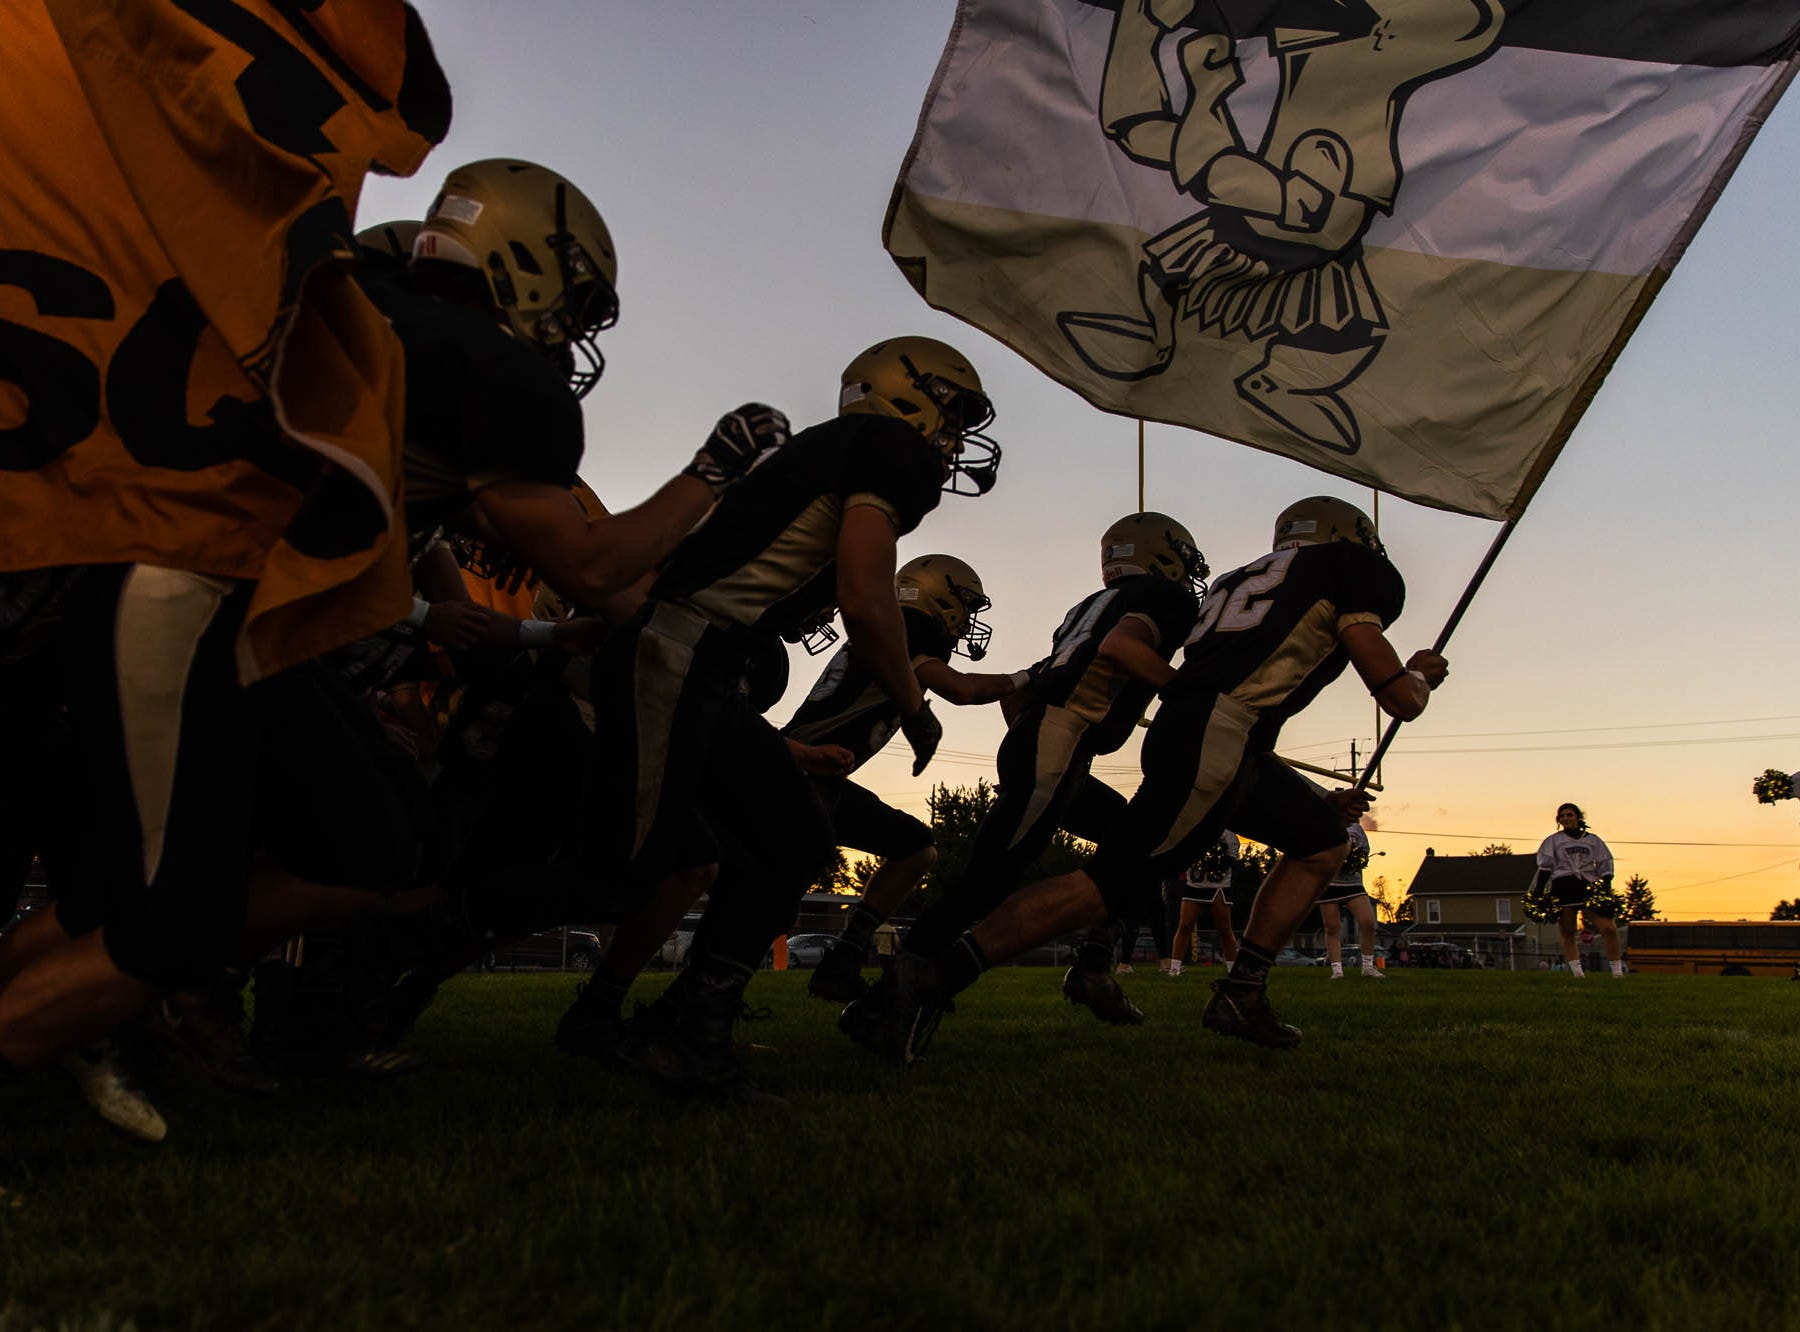 Delone's Andrew Shipley (52) carries the Delone Squires flag as he enters the field before a football game between Delone Catholic and Biglerville, Friday, Sept. 28, 2018, in McSherrystown. Delone led Biglerville 35-0 at the half.